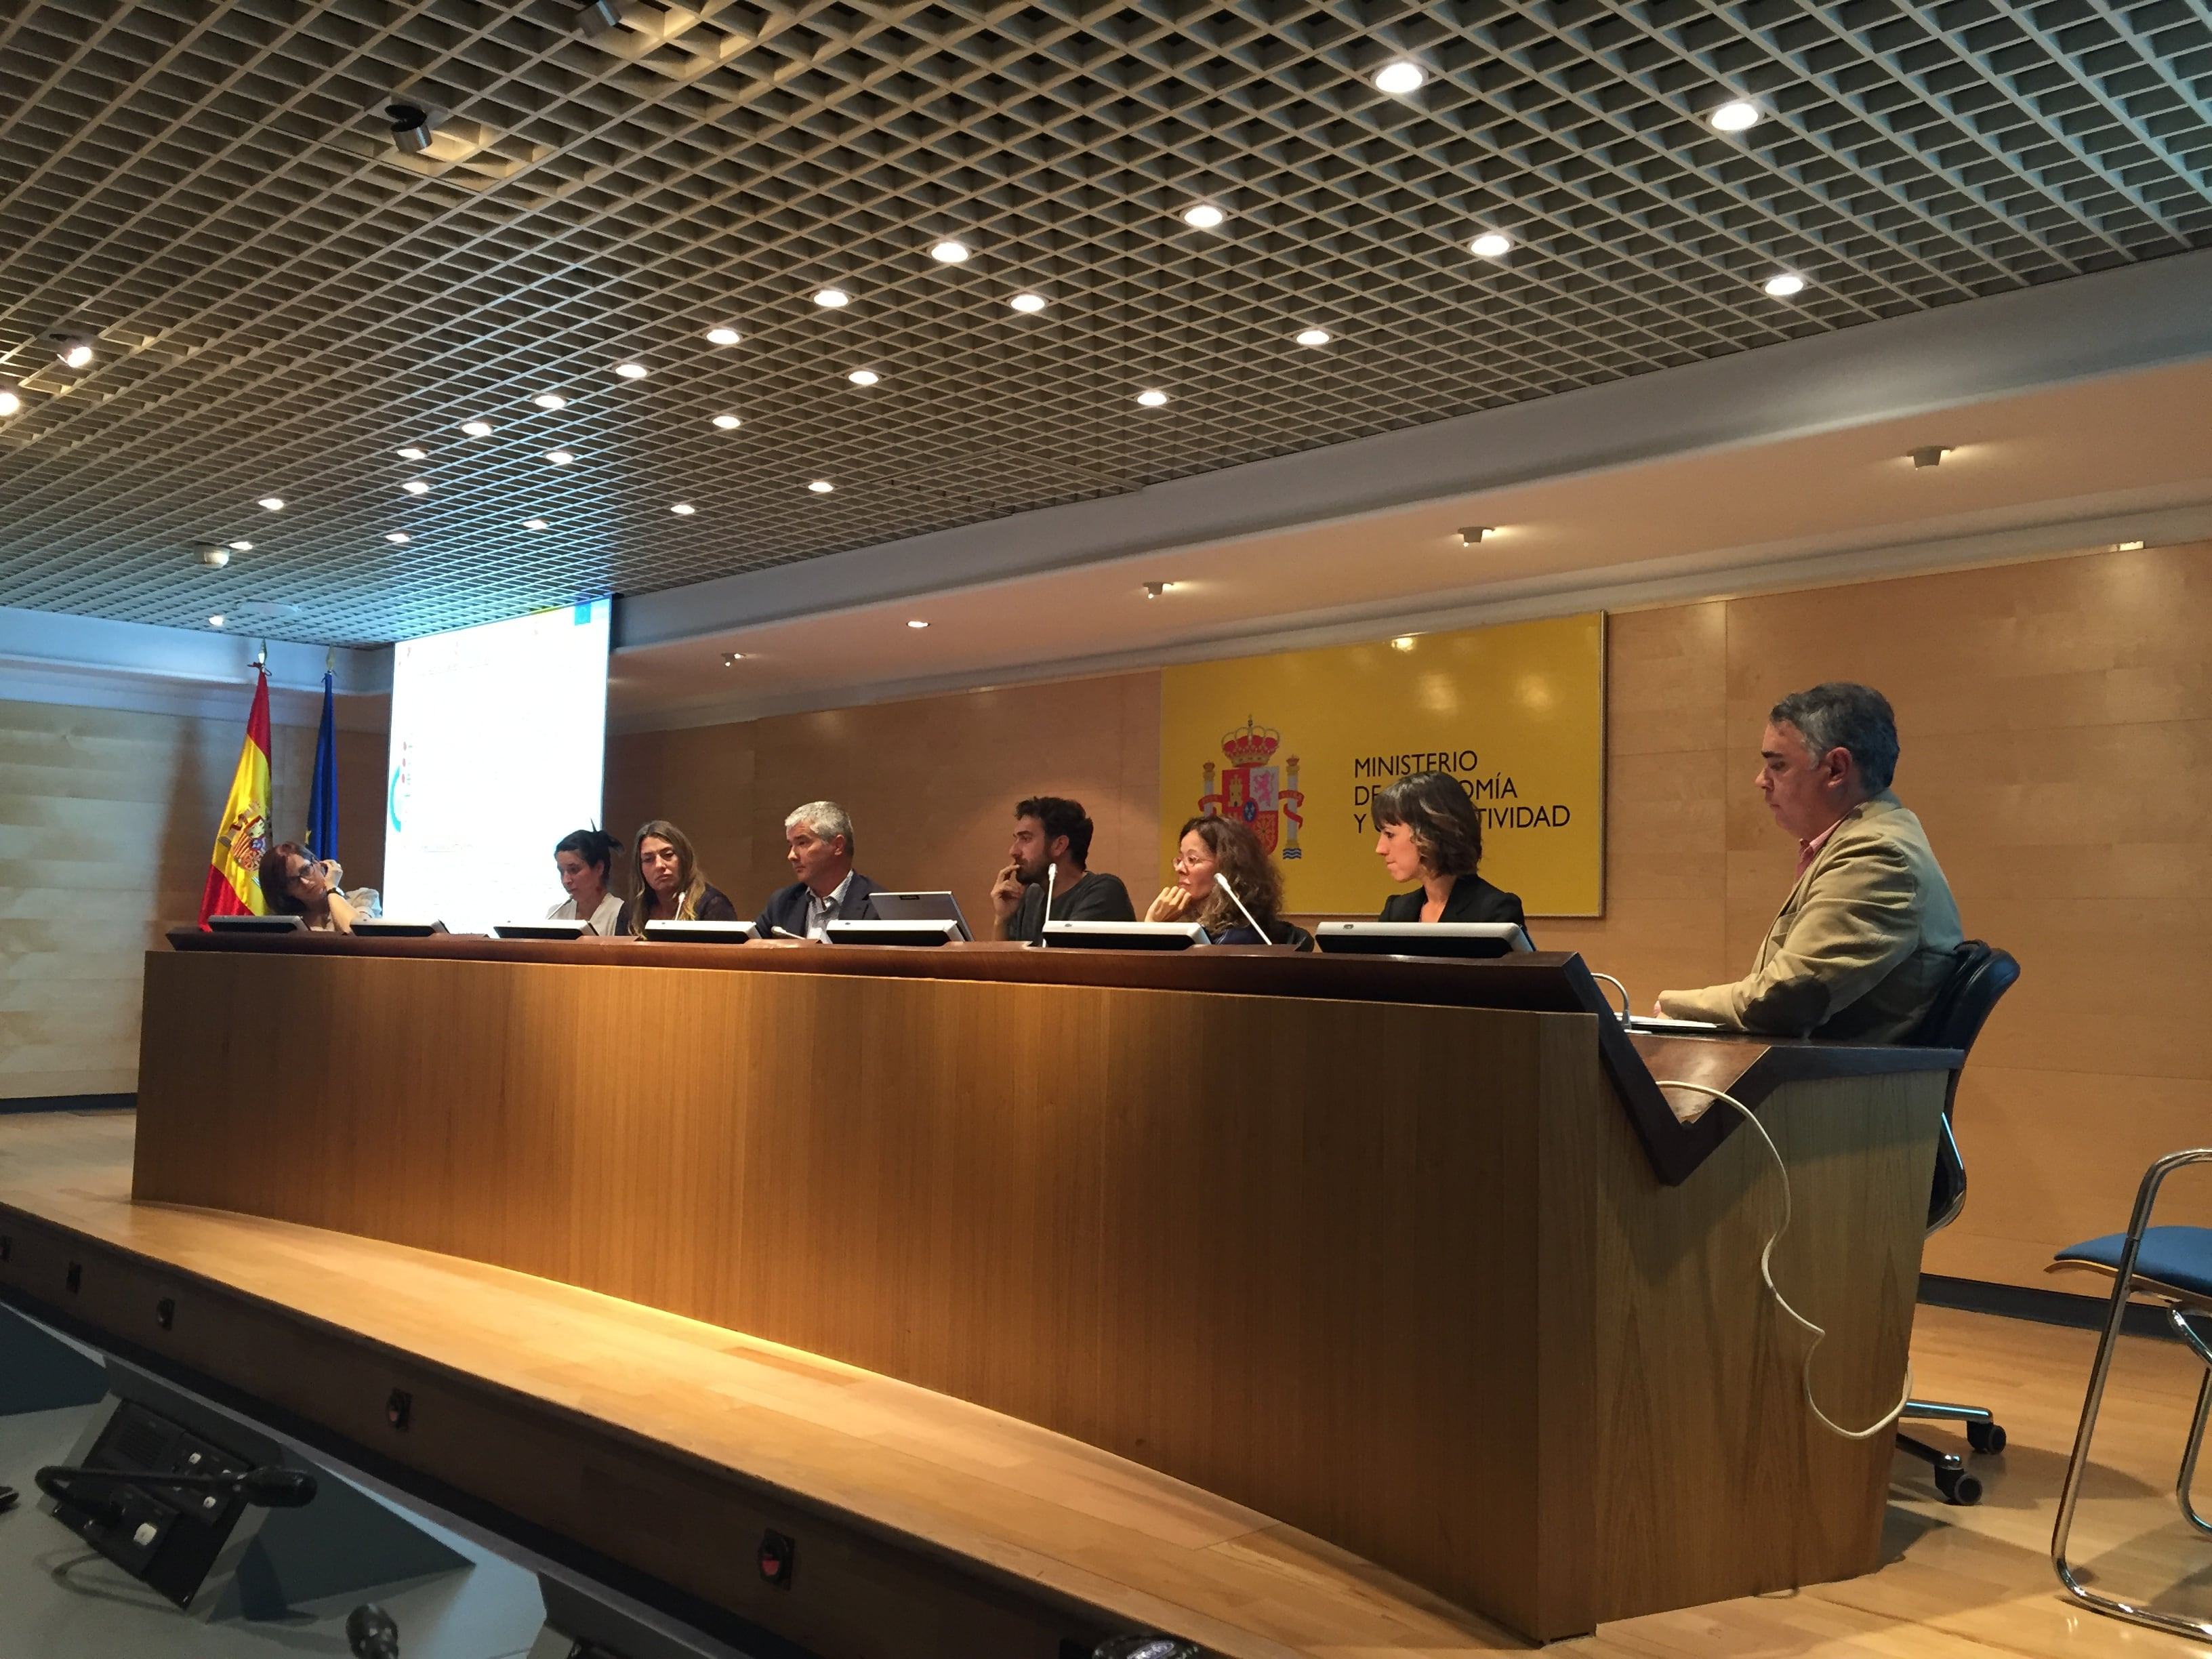 NANBIOSIS participates in the round table of the Working Day on Dissemination of ICTS